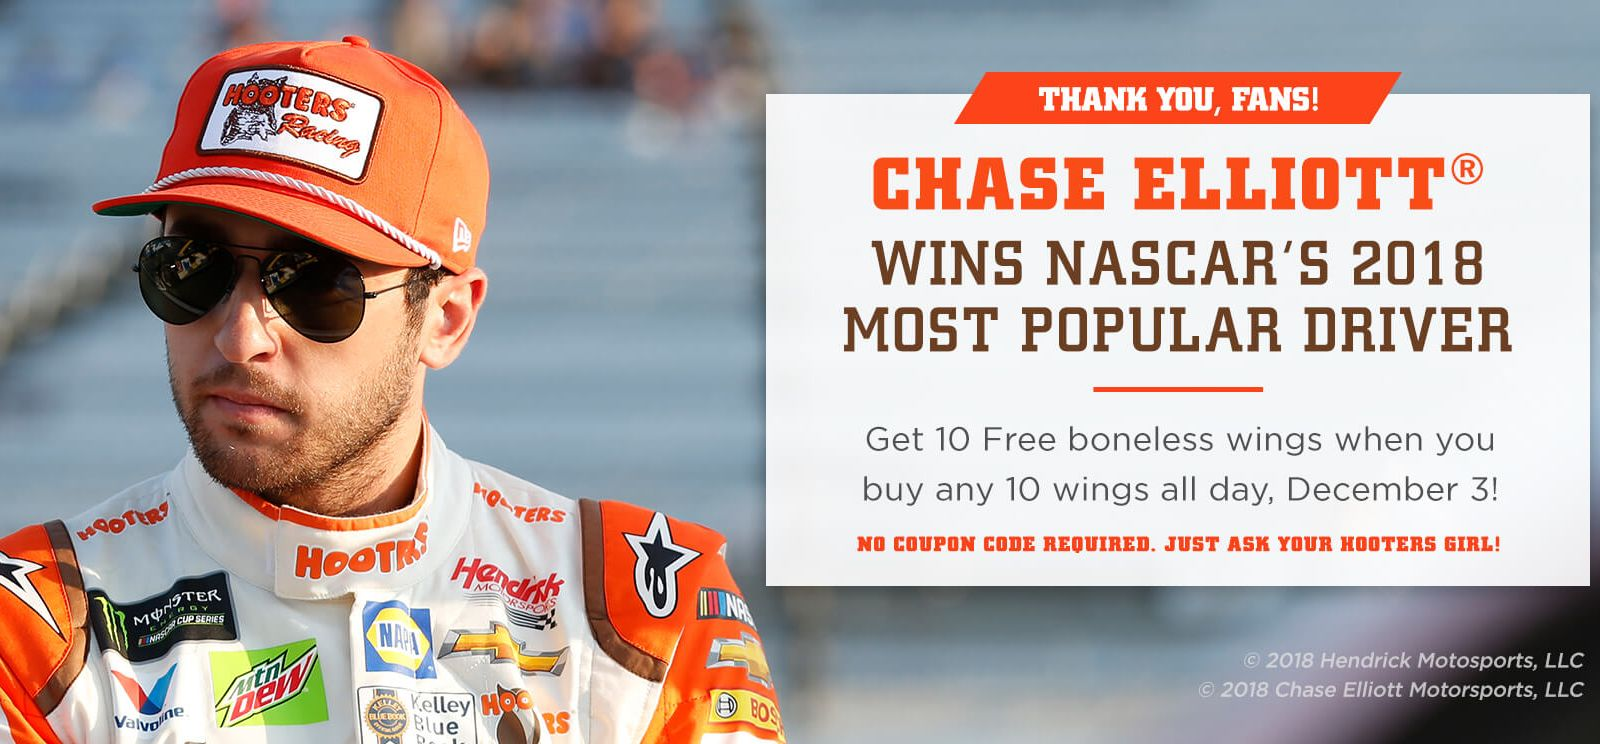 Chase Elliott Winning NASCAR's Most Popular Driver Means Free Wings at Hooters on Monday